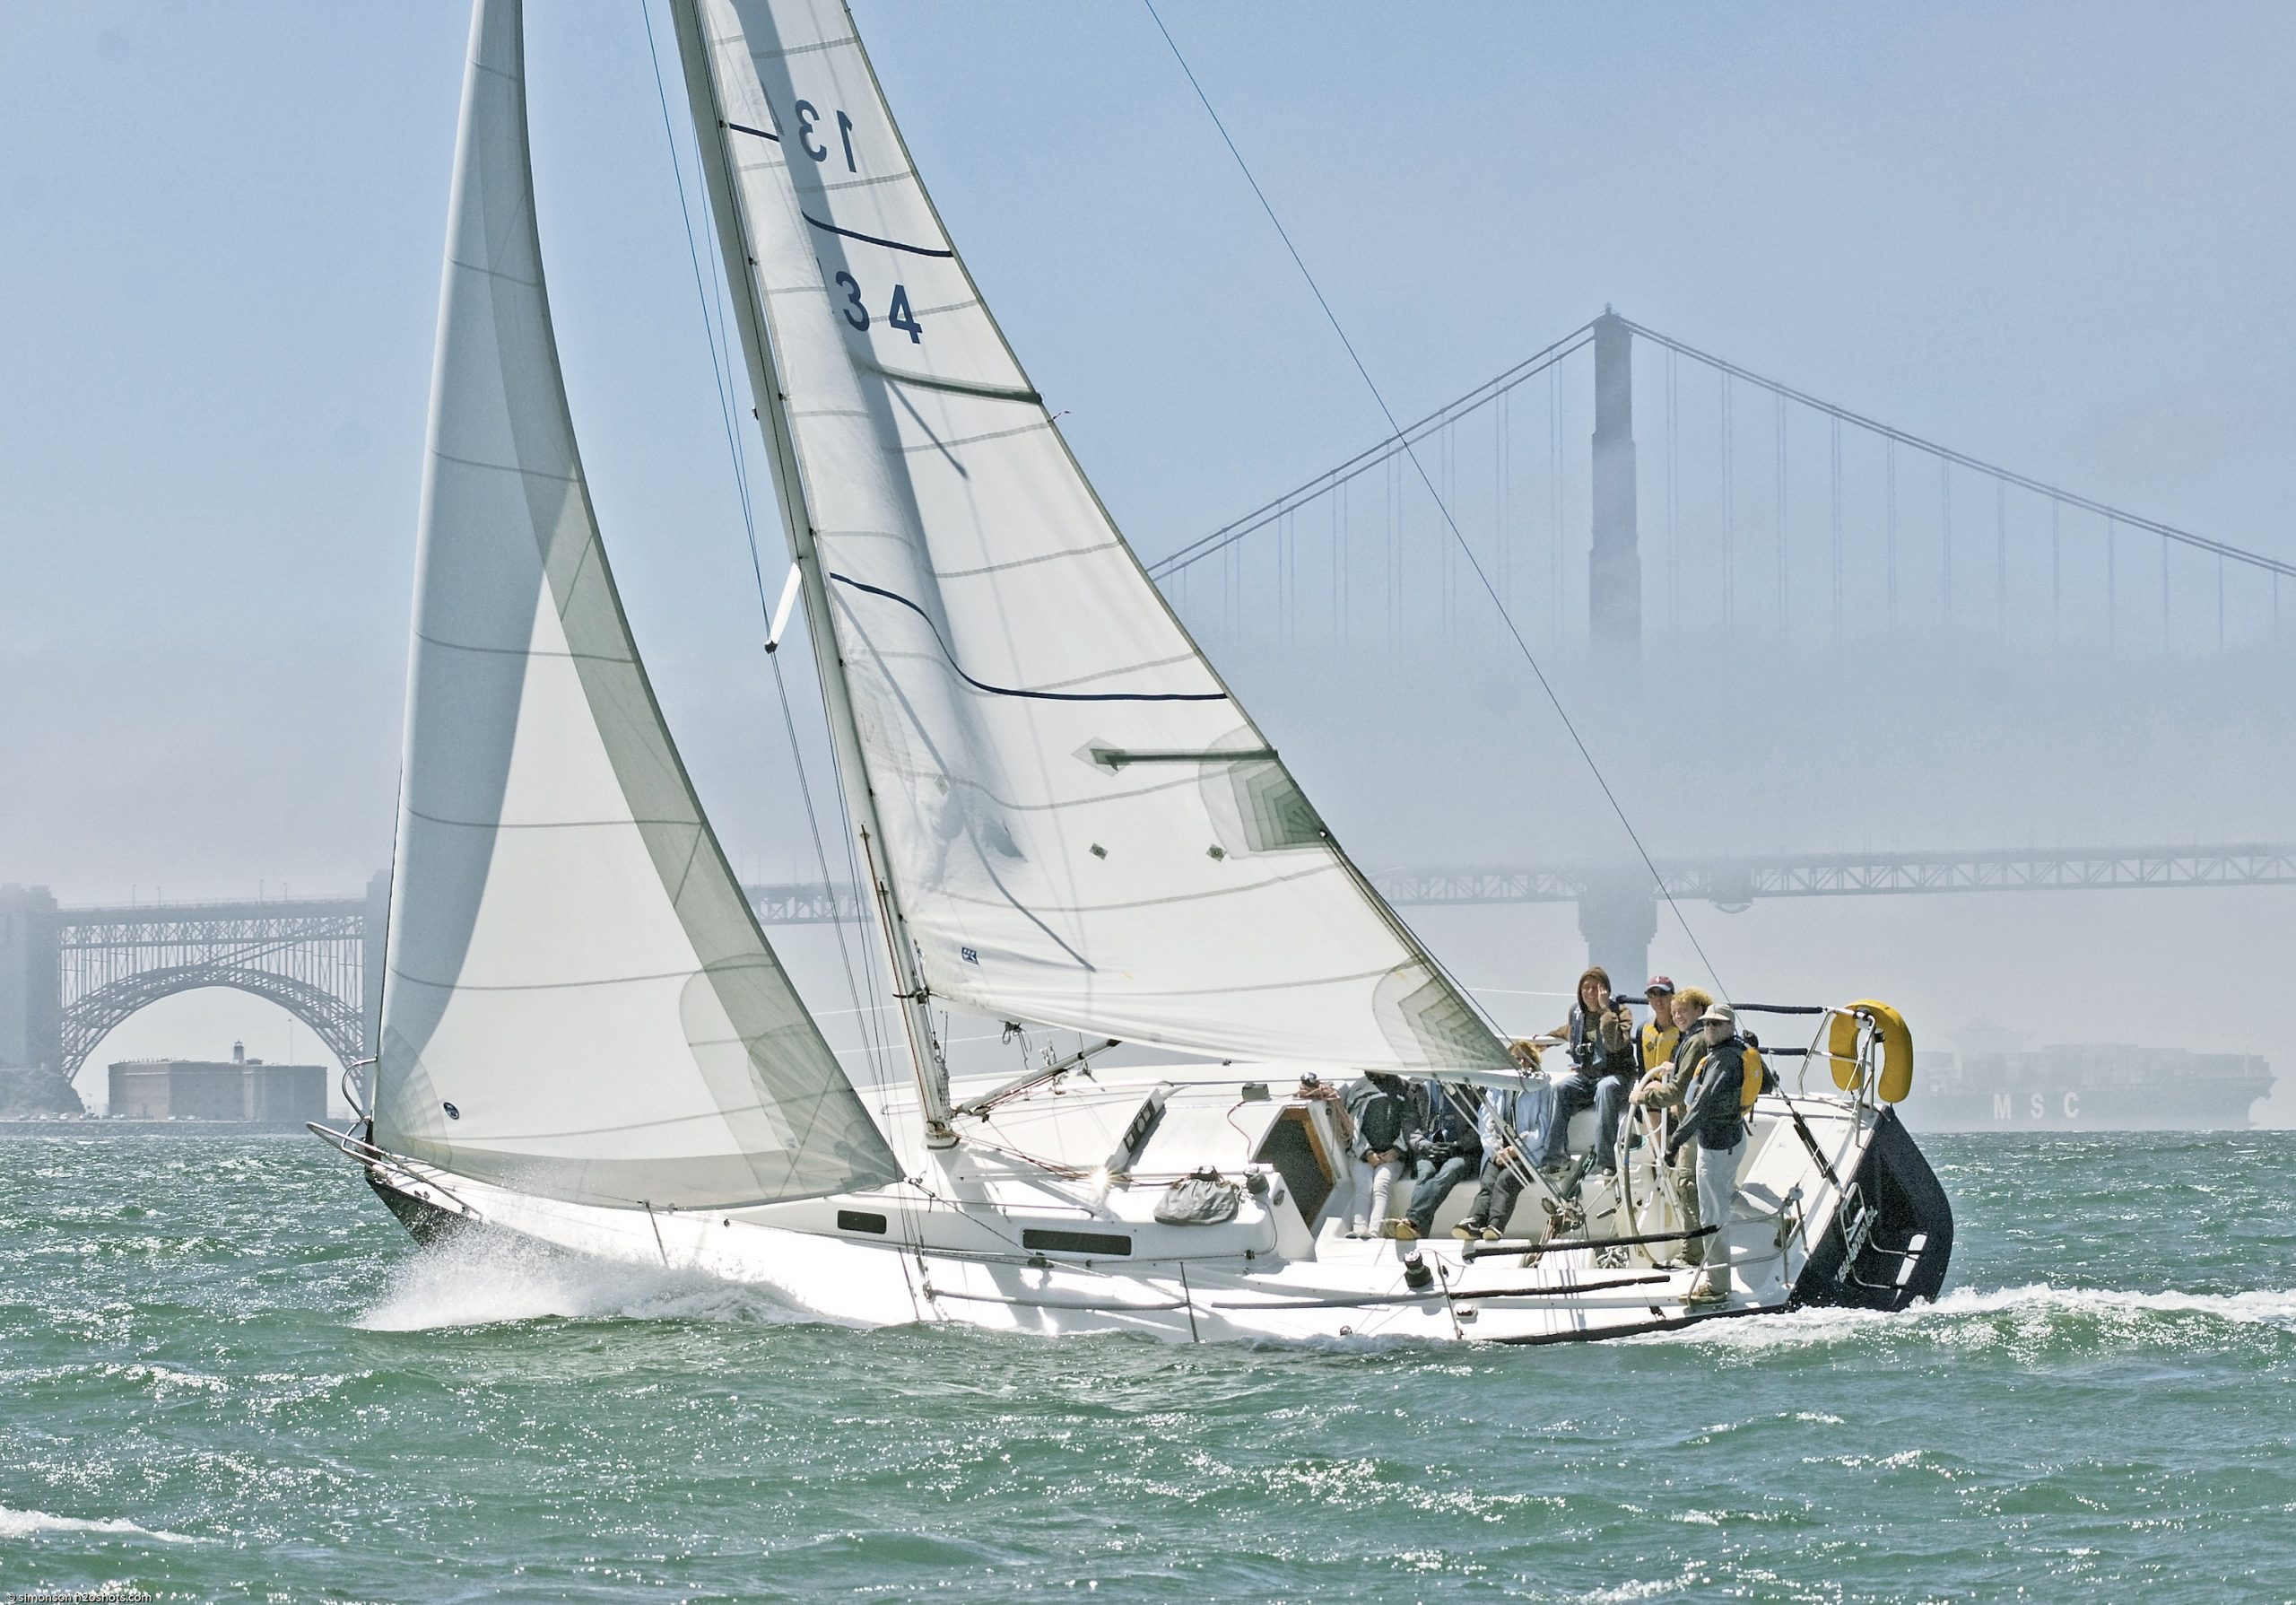 2009 Guide to Bay Sailing